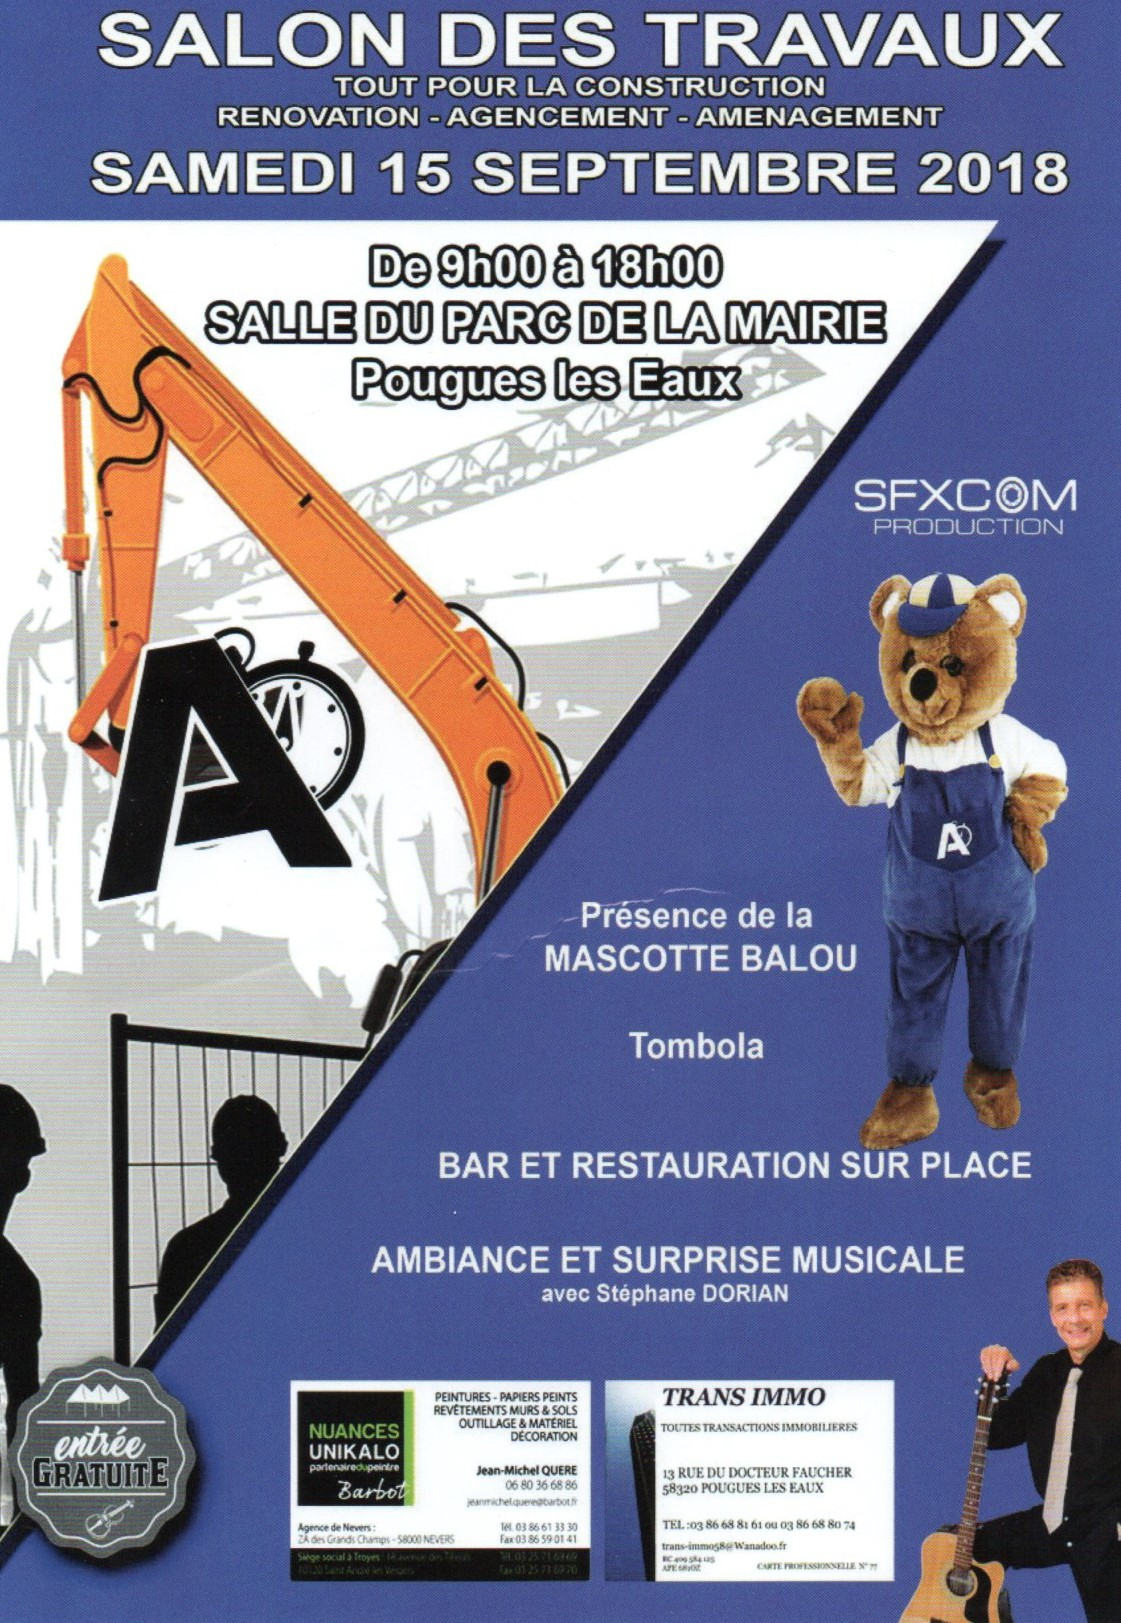 Affiche officielle du salon